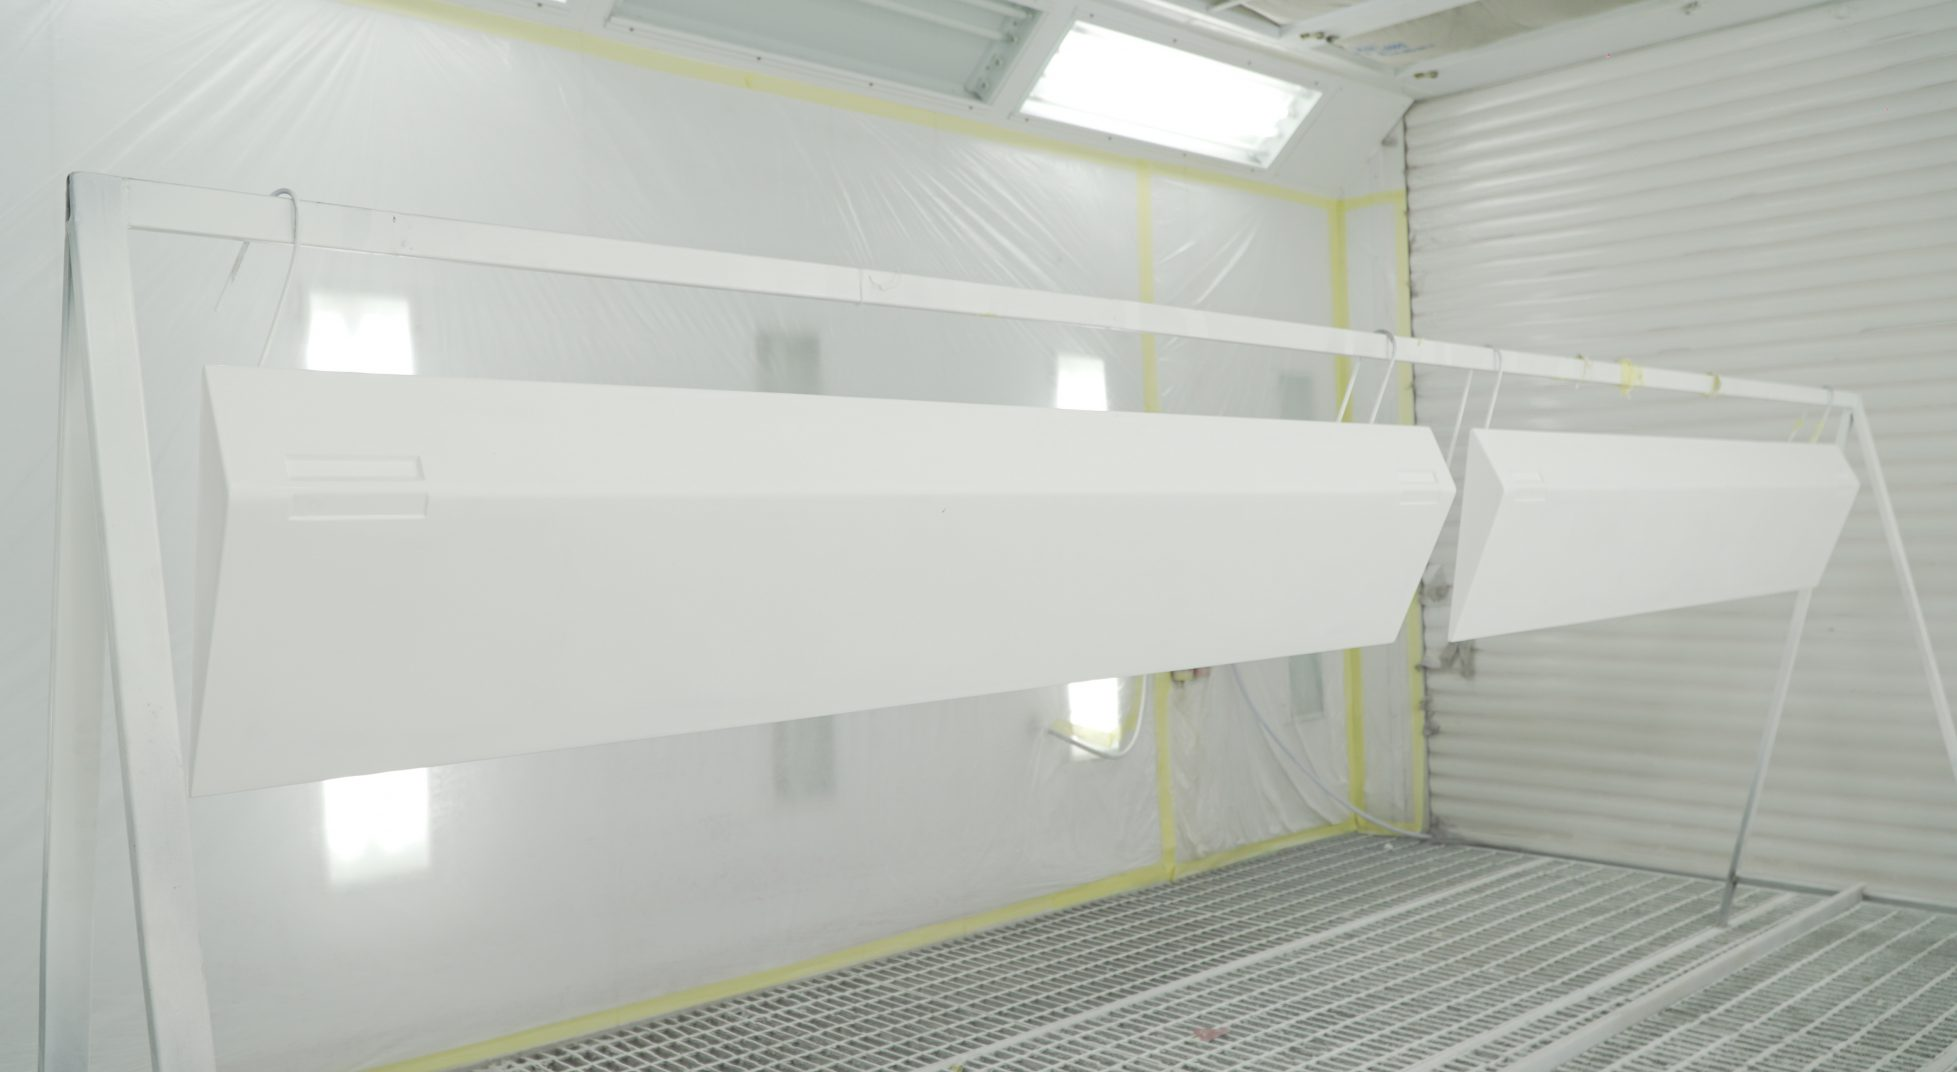 Sanding and grinding chamber 12 x 3 x 3m